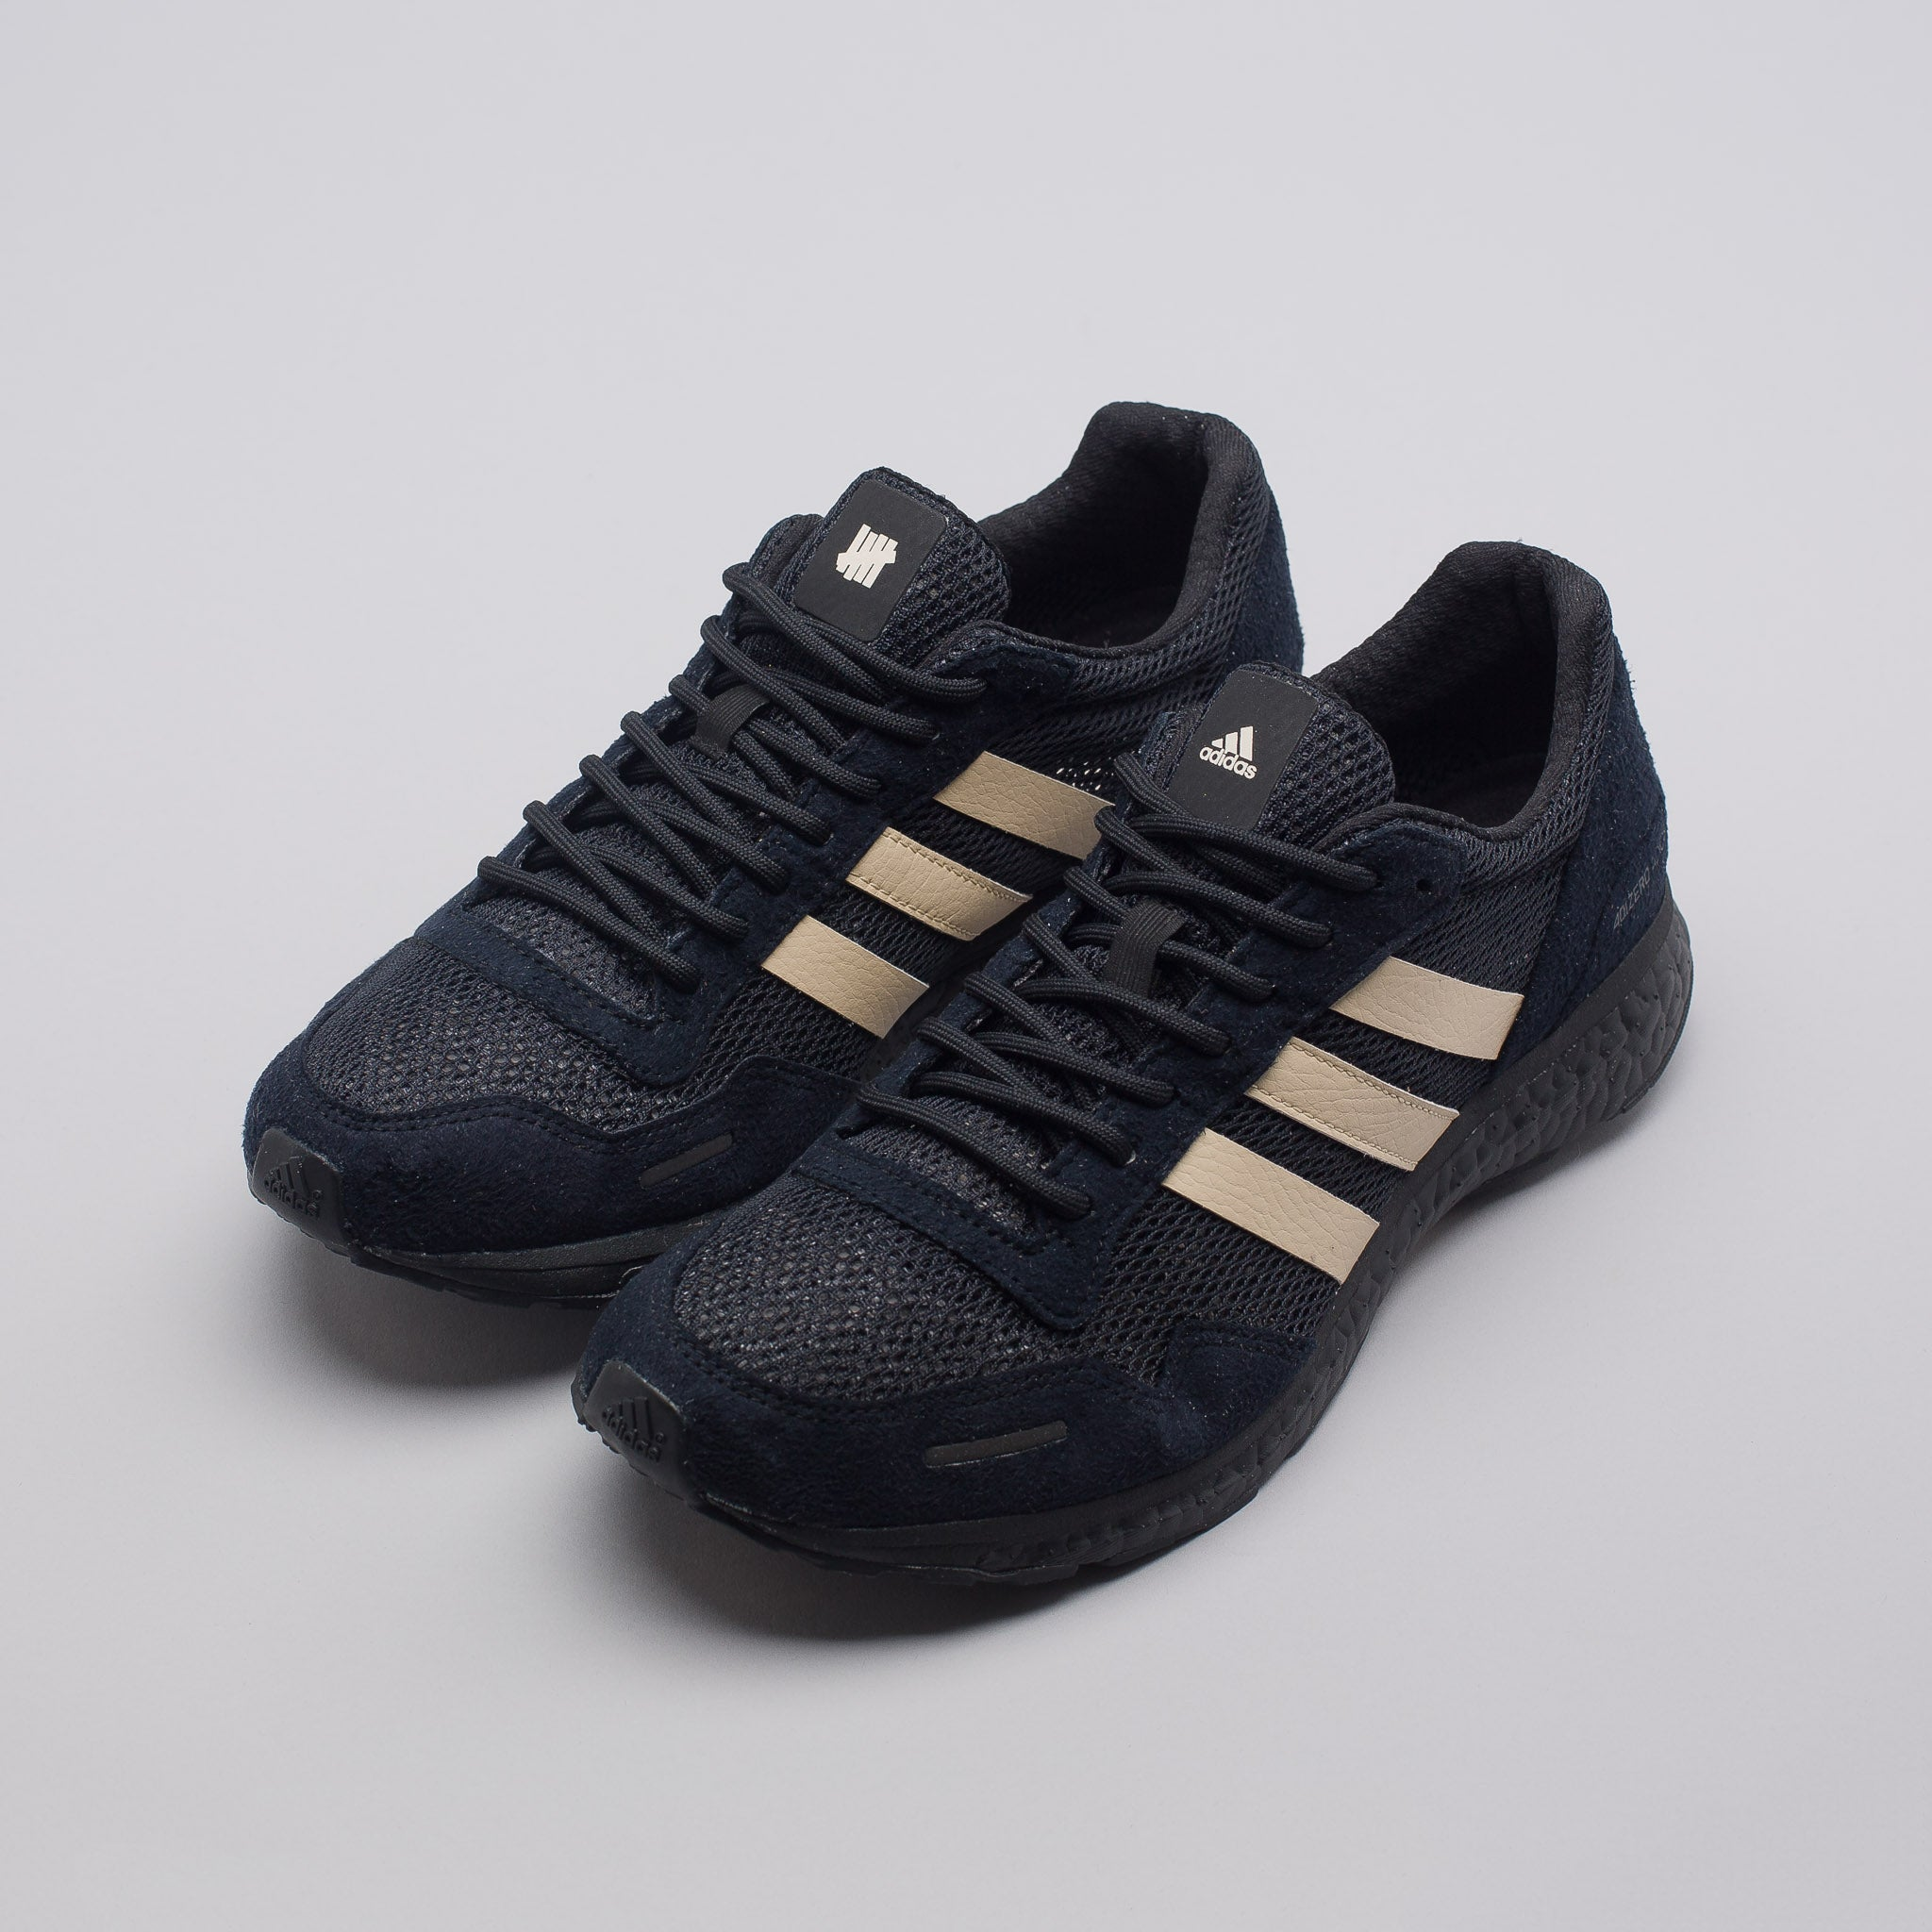 x UNDEFEATED Adizero Adios in Core Black/Dune